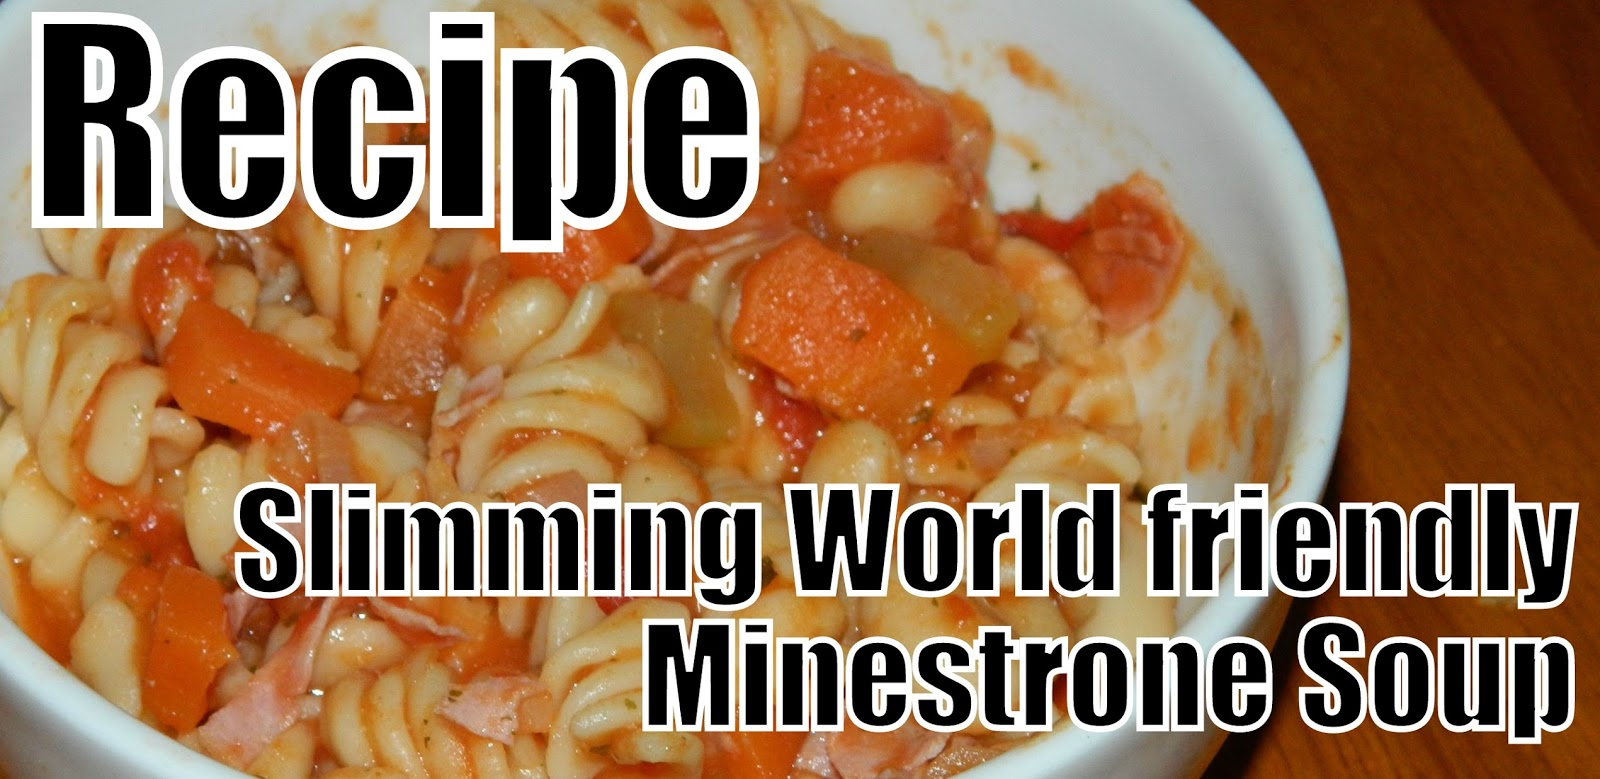 [RECIPE] Slimming World Minestrone Soup